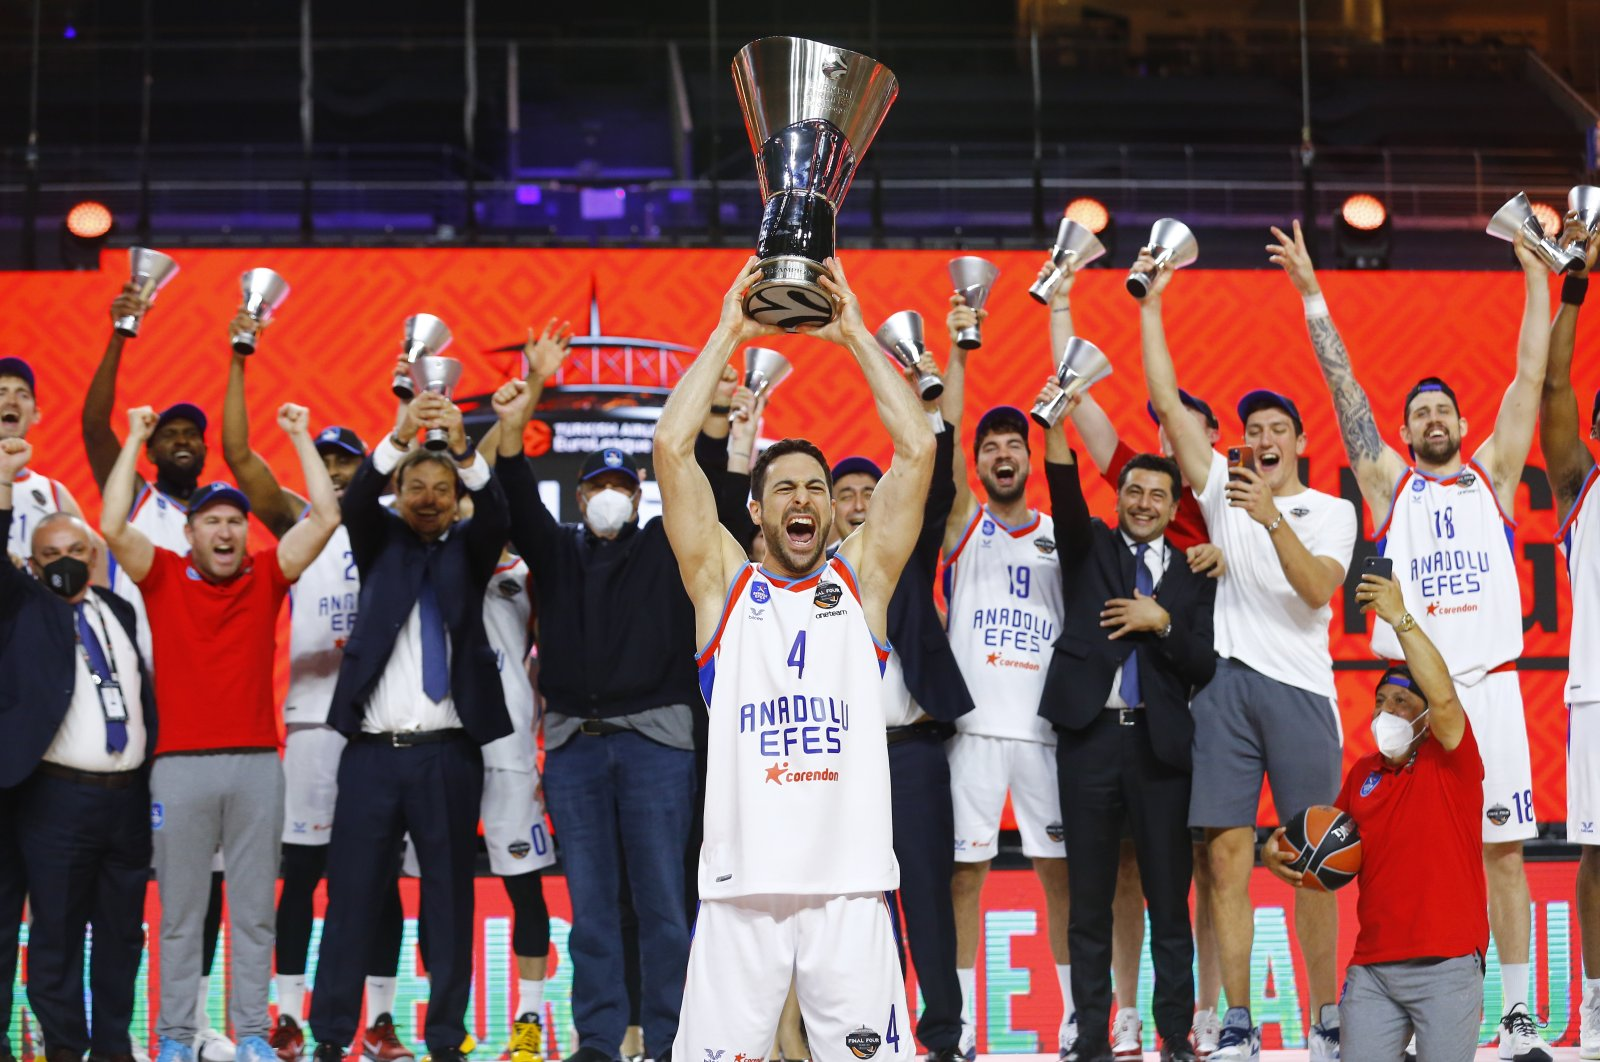 Anadolu Efes's Doğus Balbay celebrates with the trophy and teammates after winning the THY EuroLeague at Lanxess Arena, Cologne, Germany, May 30, 2021. (Reuters Photo)